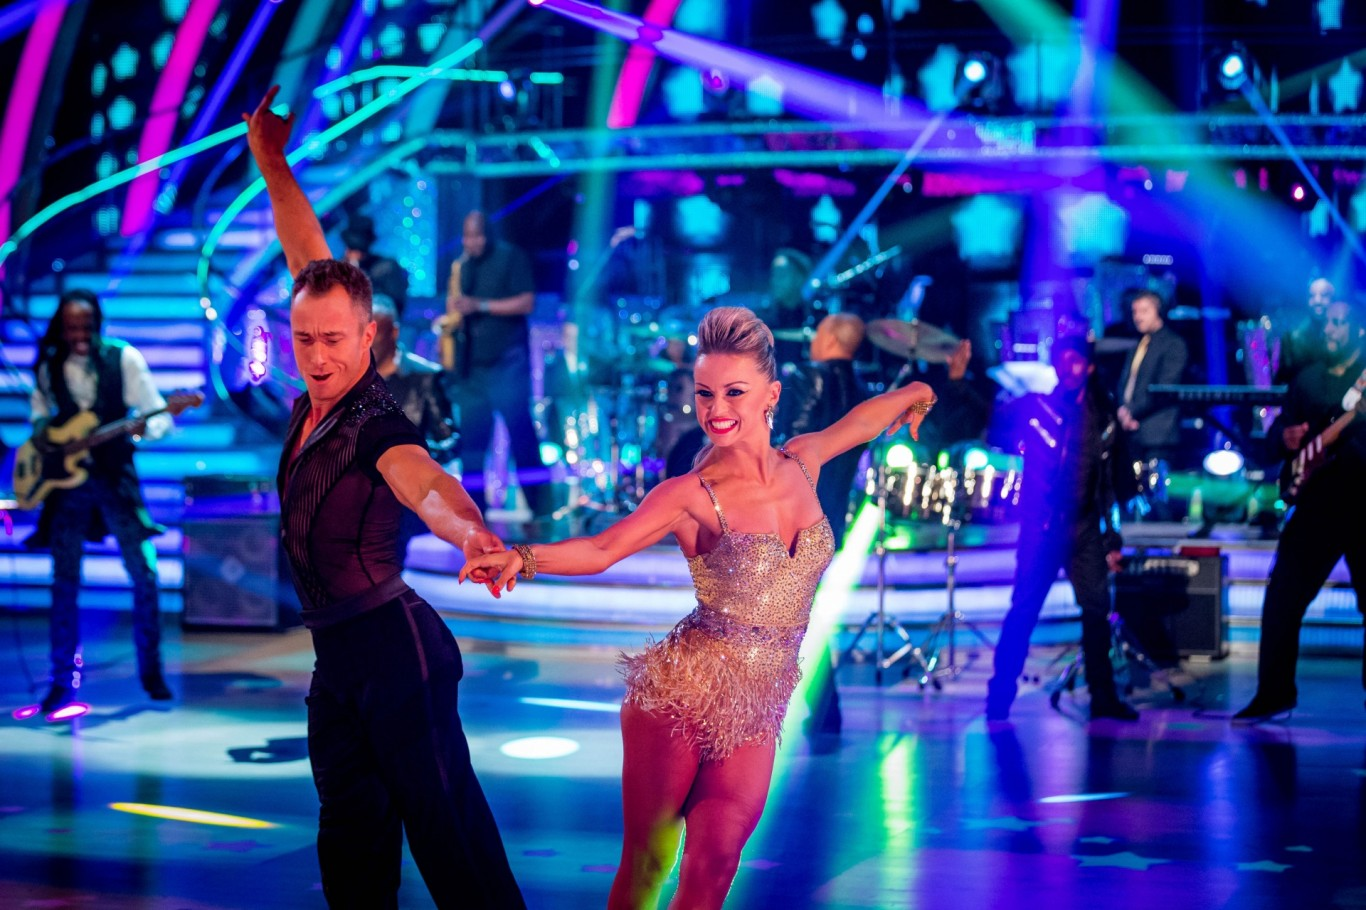 James Jordan dancing with wife Ola on Strictly